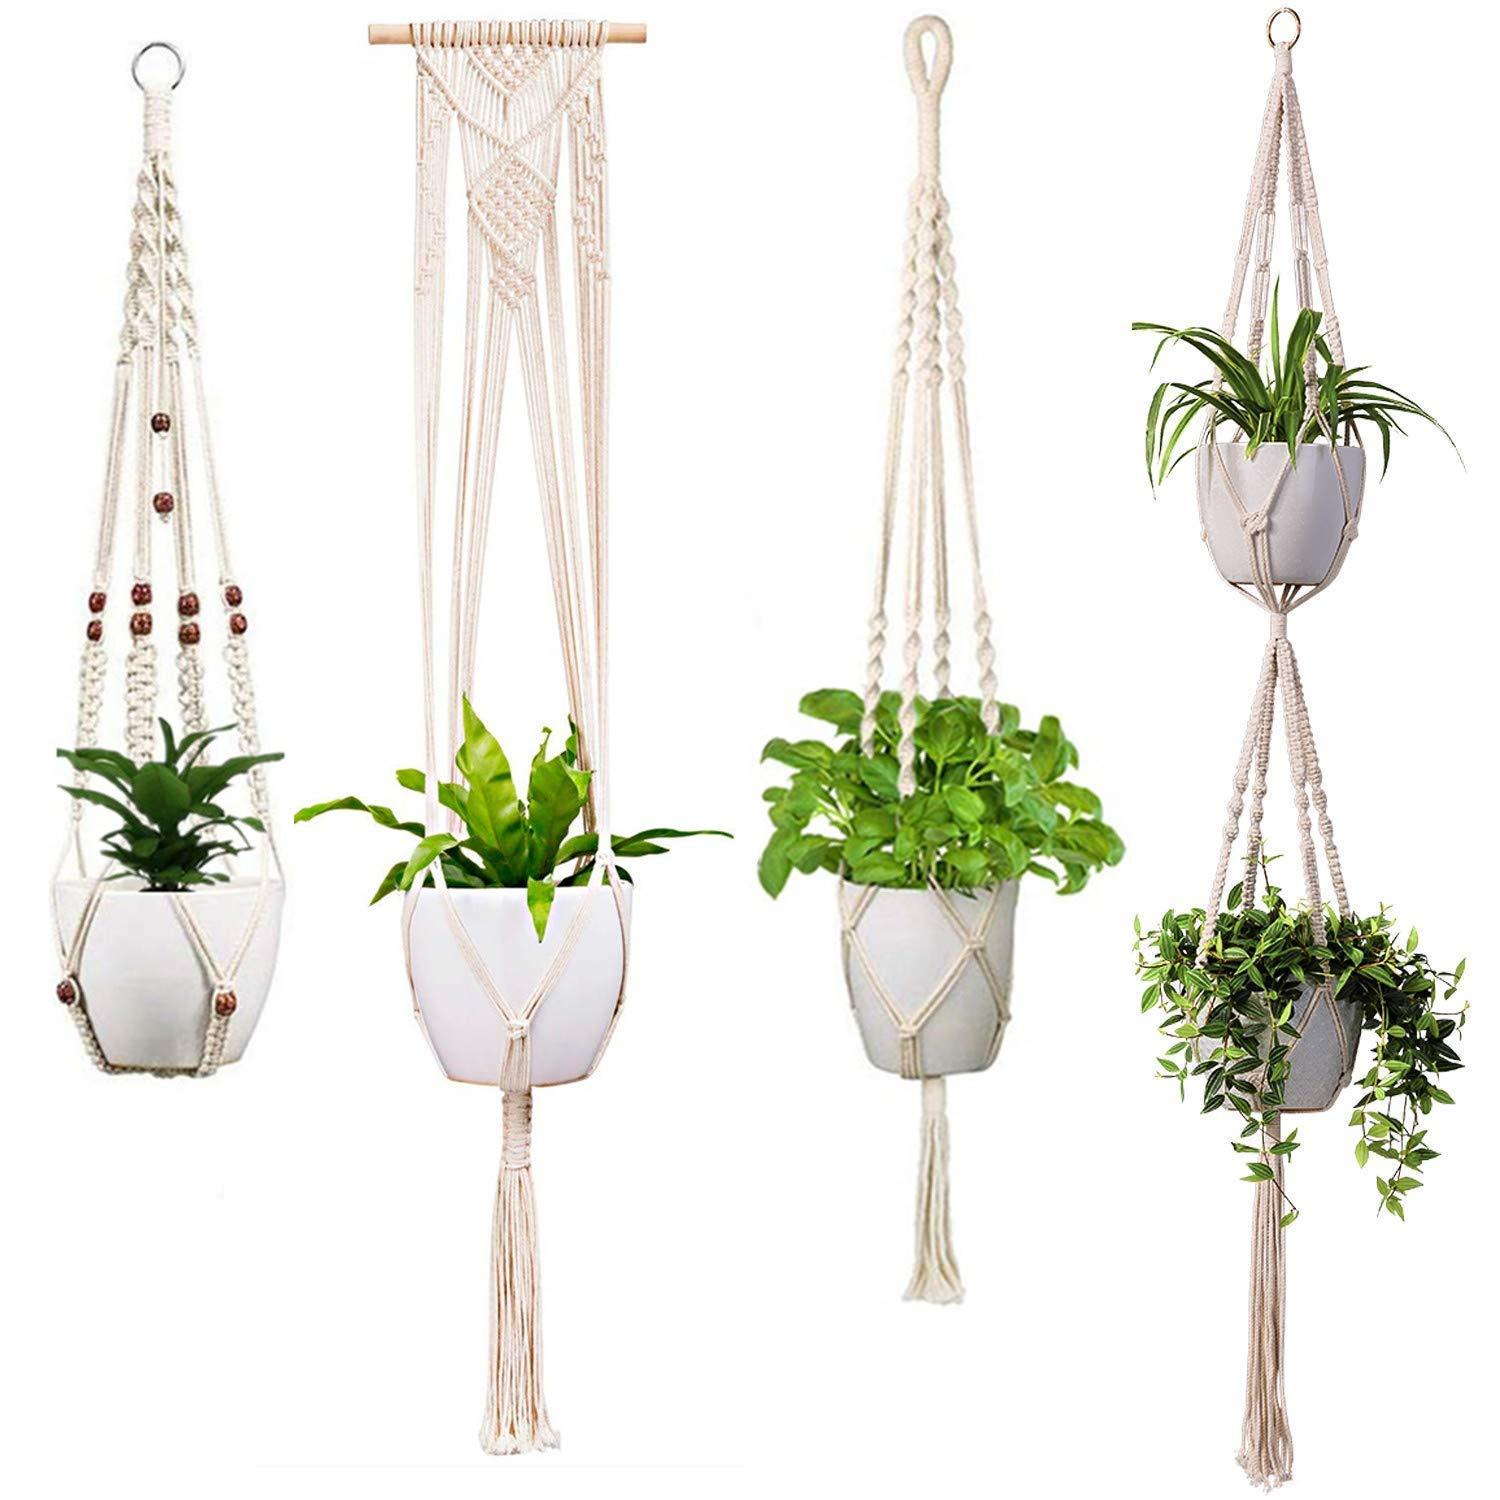 LiyuanQ Macrame Plant Hangers Indoor Outdoor Wall Hanging Planter Handmade Plant Holder Hanging Planter Basket Cotton Rope Flower Pot Holder Modern Boho Home Decor 4 Pack, in 4 Different Designs